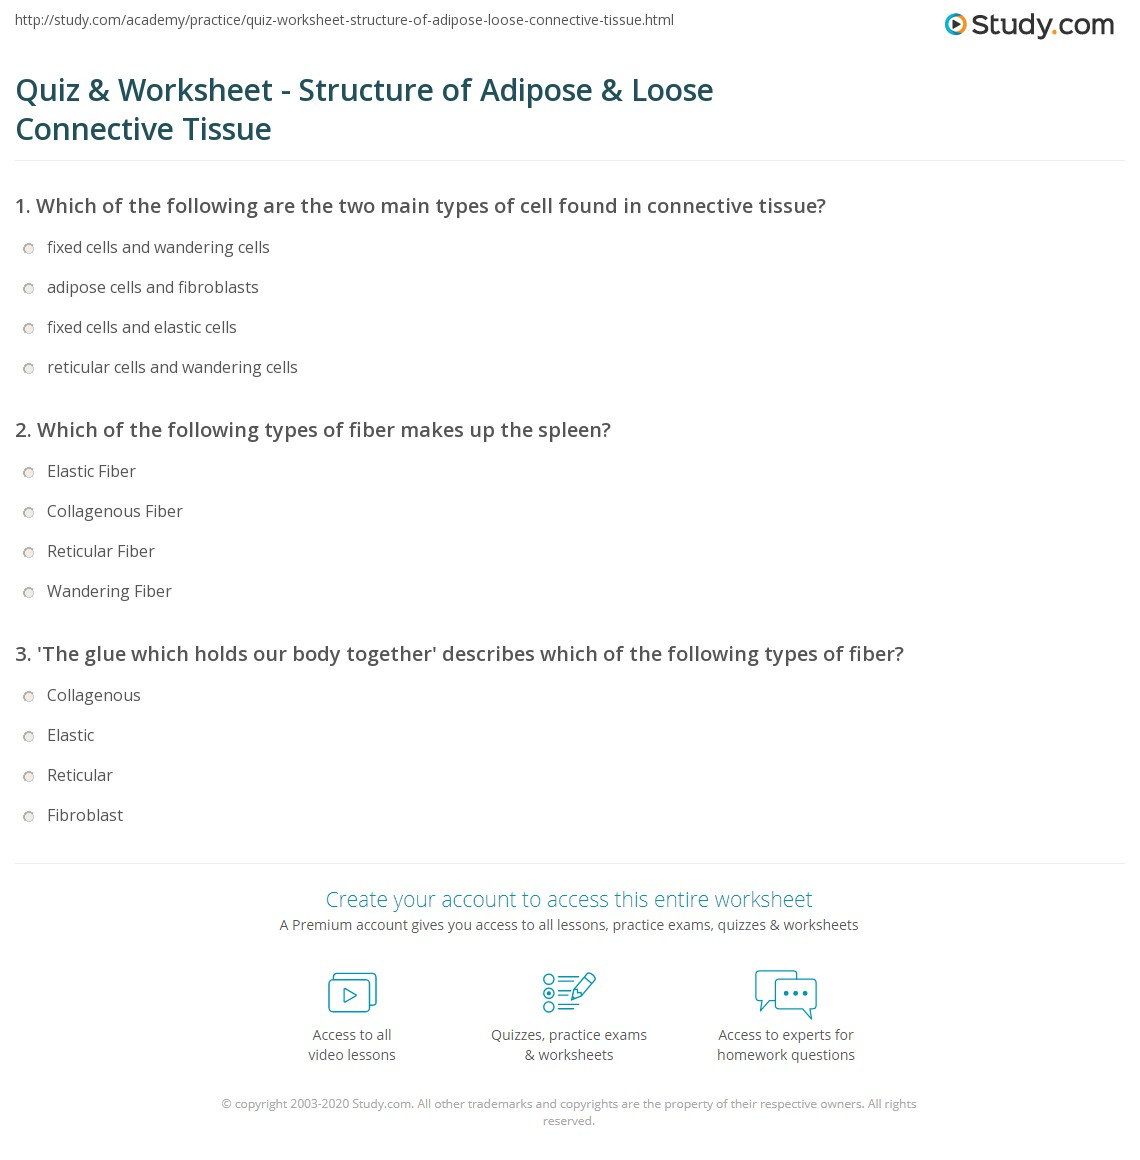 Quiz & Worksheet - Structure of Adipose & Loose Connective Tissue ...